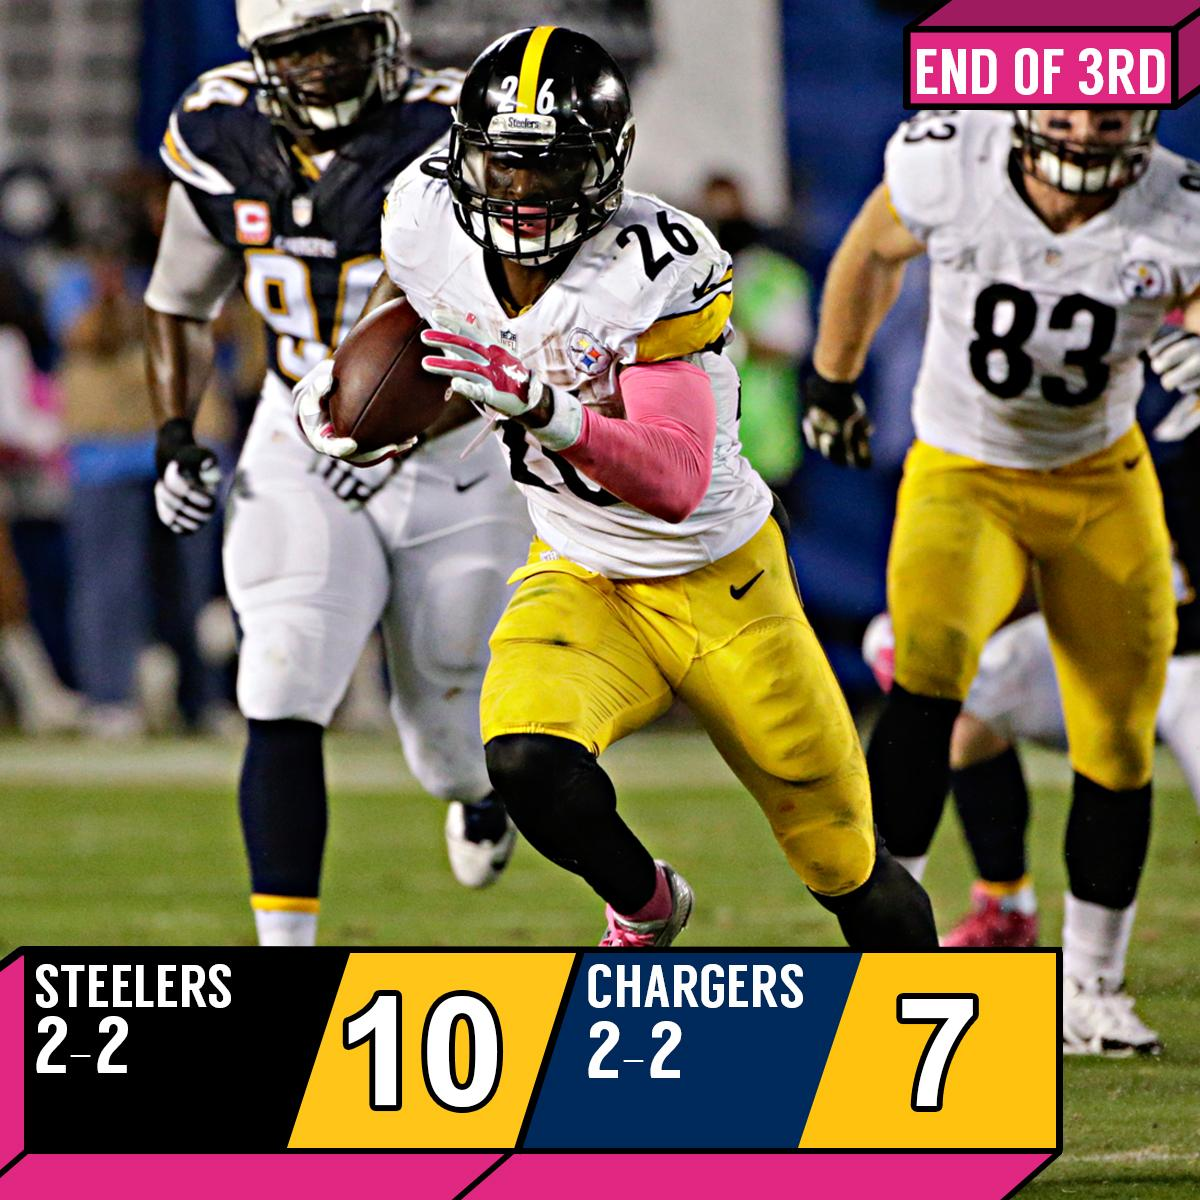 NFL On Twitter END OF 3RD QUARTER Steelers 10 Chargers 7 MNF